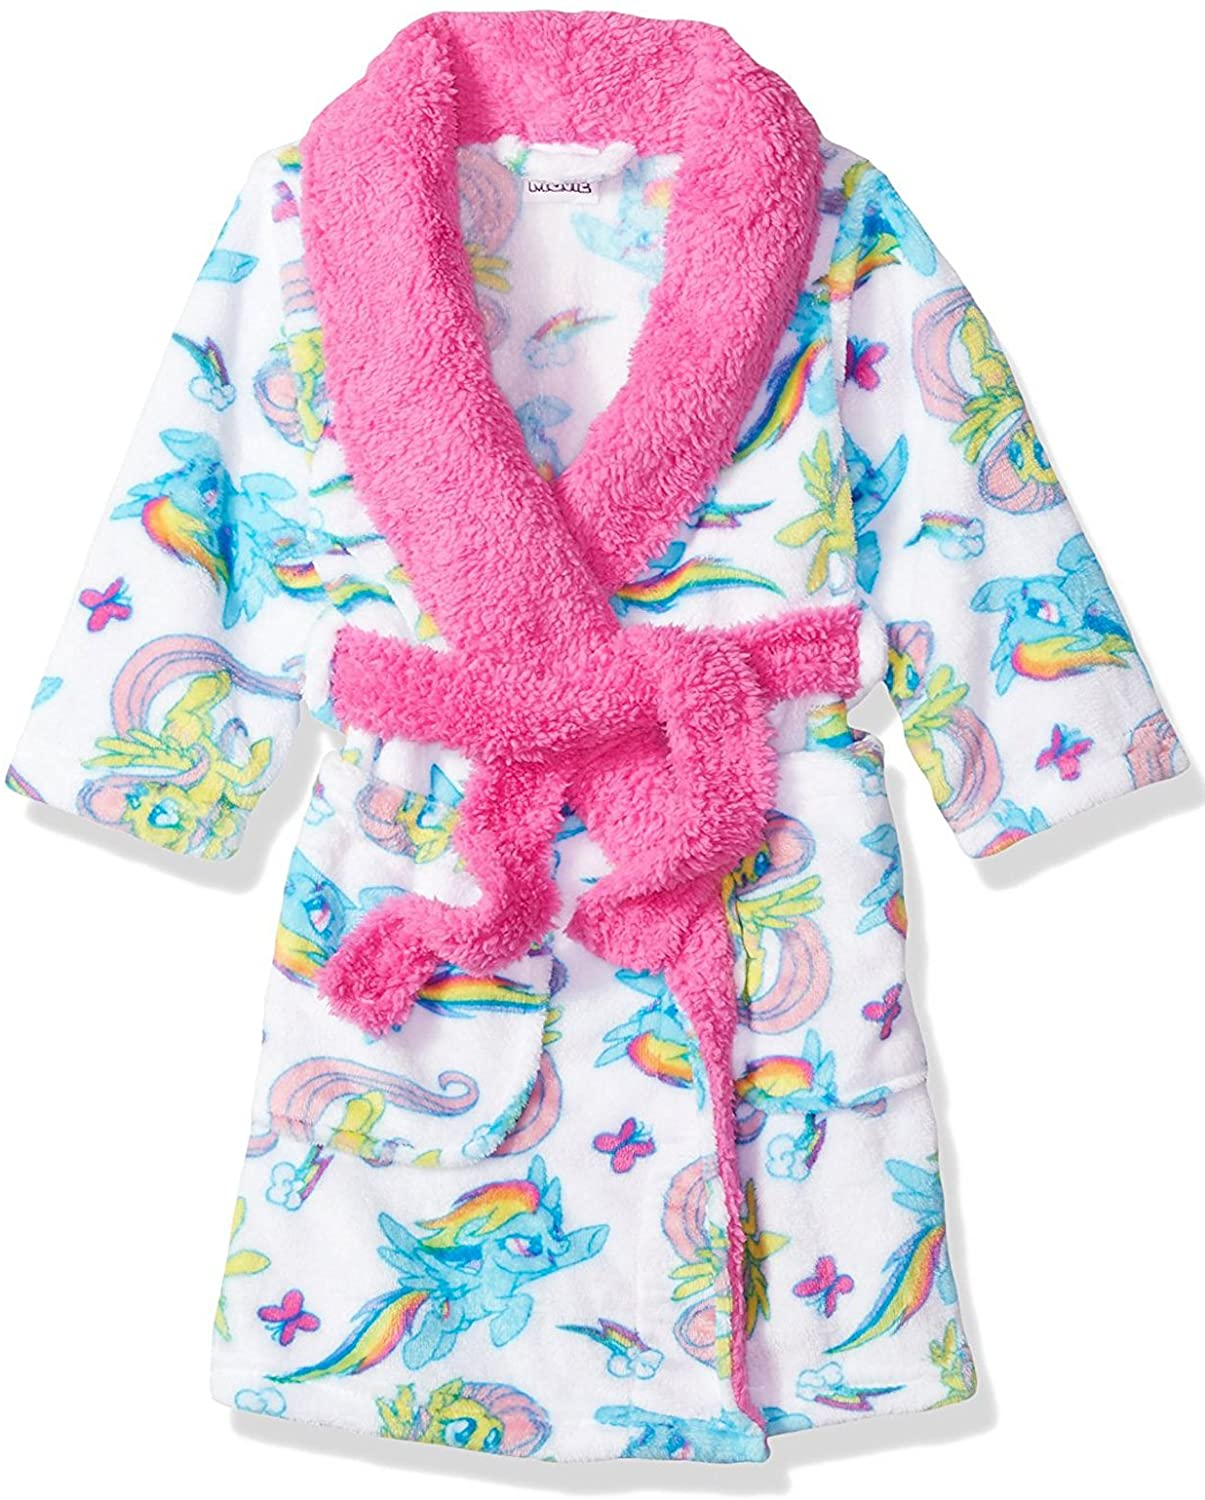 My Little Pony Girls Fleece Bathrobe Robe